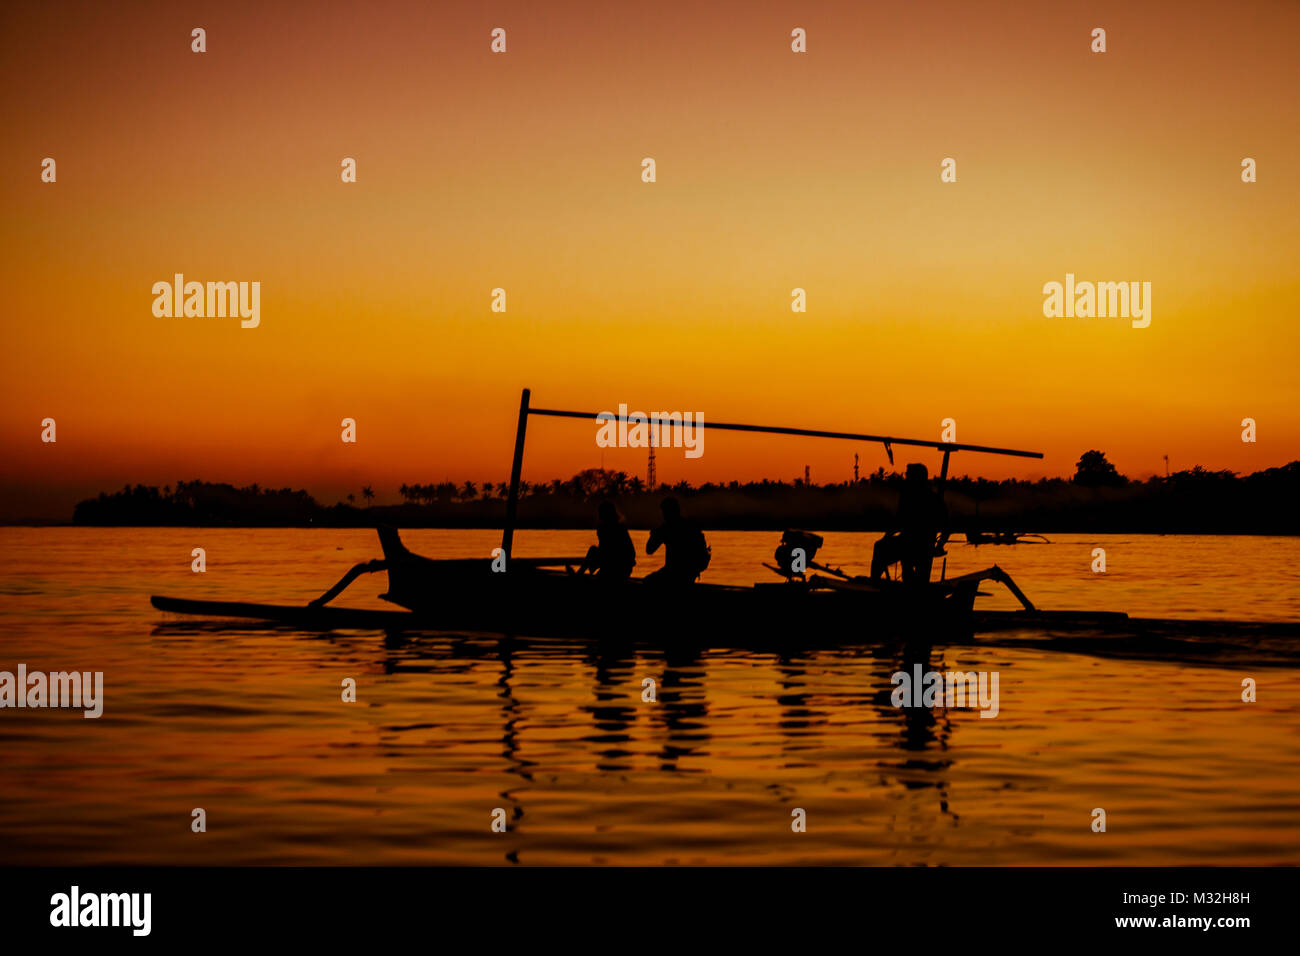 Silhouette of boat with people sailing in the early morning in Bali, Indonesia Stock Photo